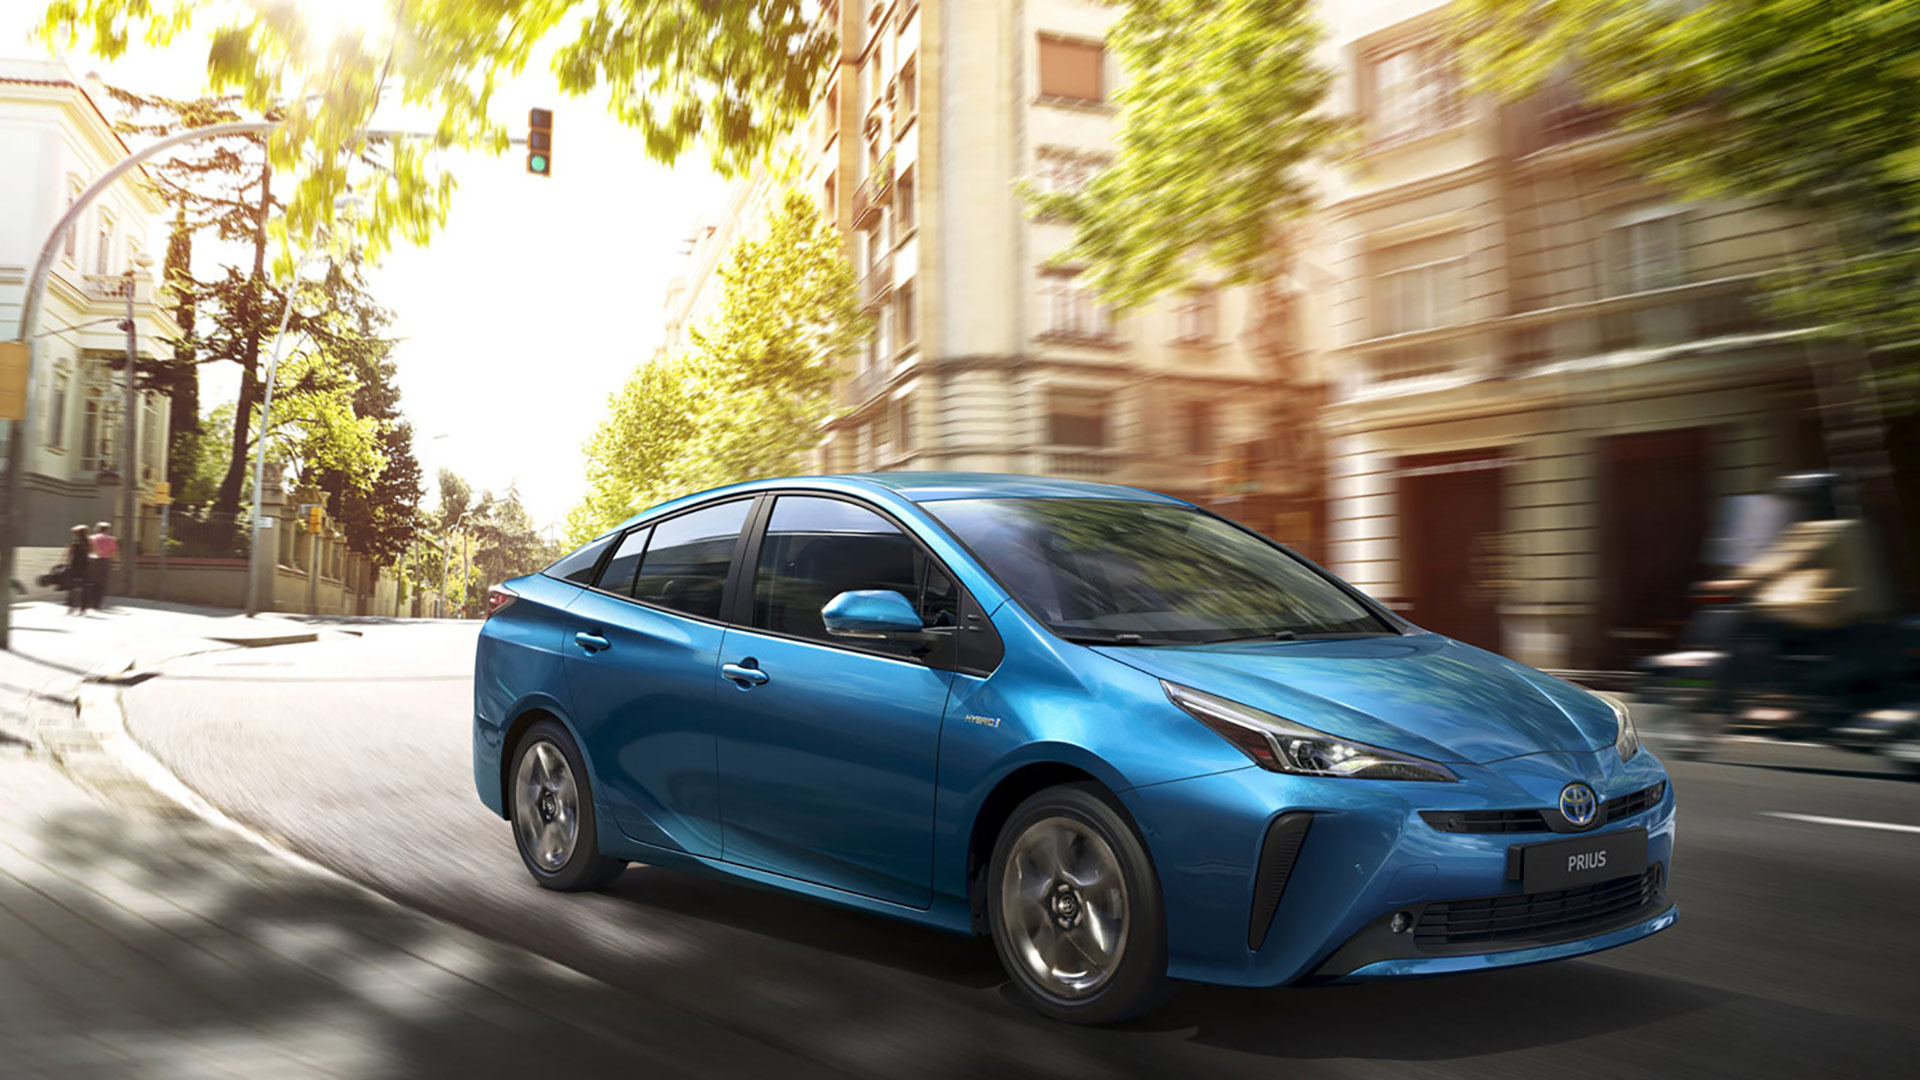 All You Need To Know About Top 10 Hybrid Cars in Australia